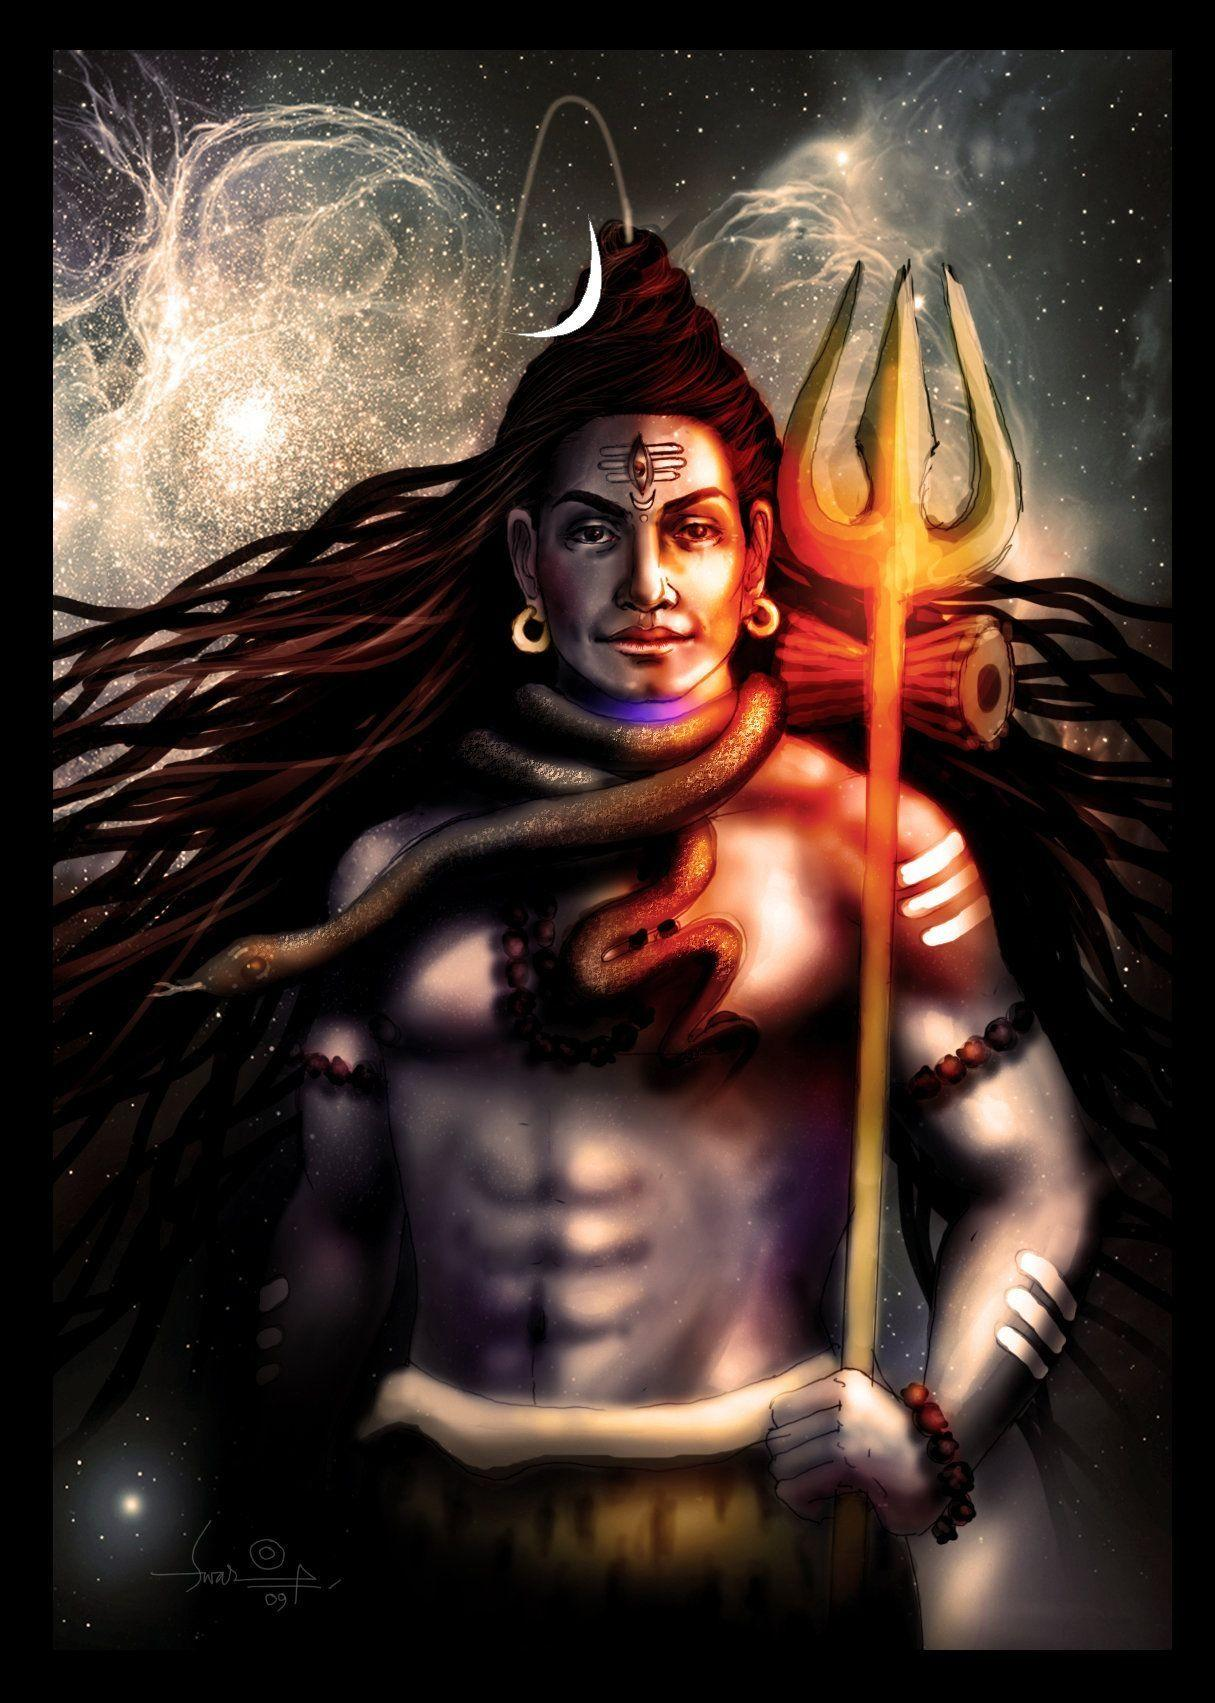 Angry lord shiva wallpapers wallpaper cave - New lord shiva wallpapers ...